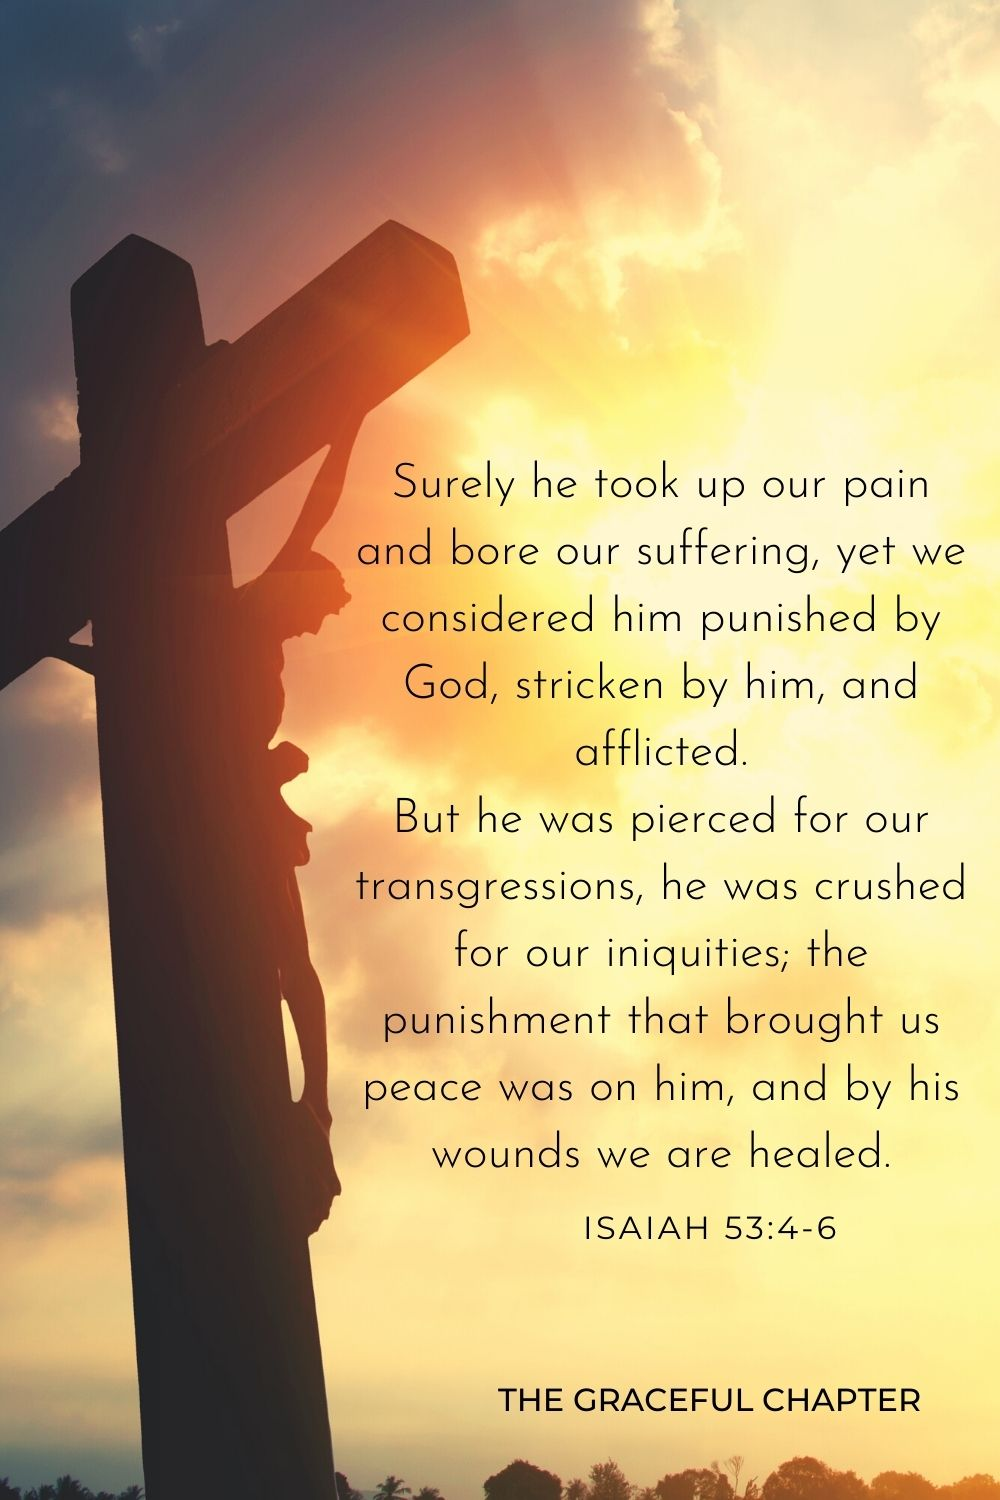 Surely he took up our pain and bore our suffering, yet we considered him punished by God, stricken by him, and afflicted. But he was pierced for our transgressions, he was crushed for our iniquities; the punishment that brought us peace was on him, and by his wounds, we are healed. Isaiah 53:4-6